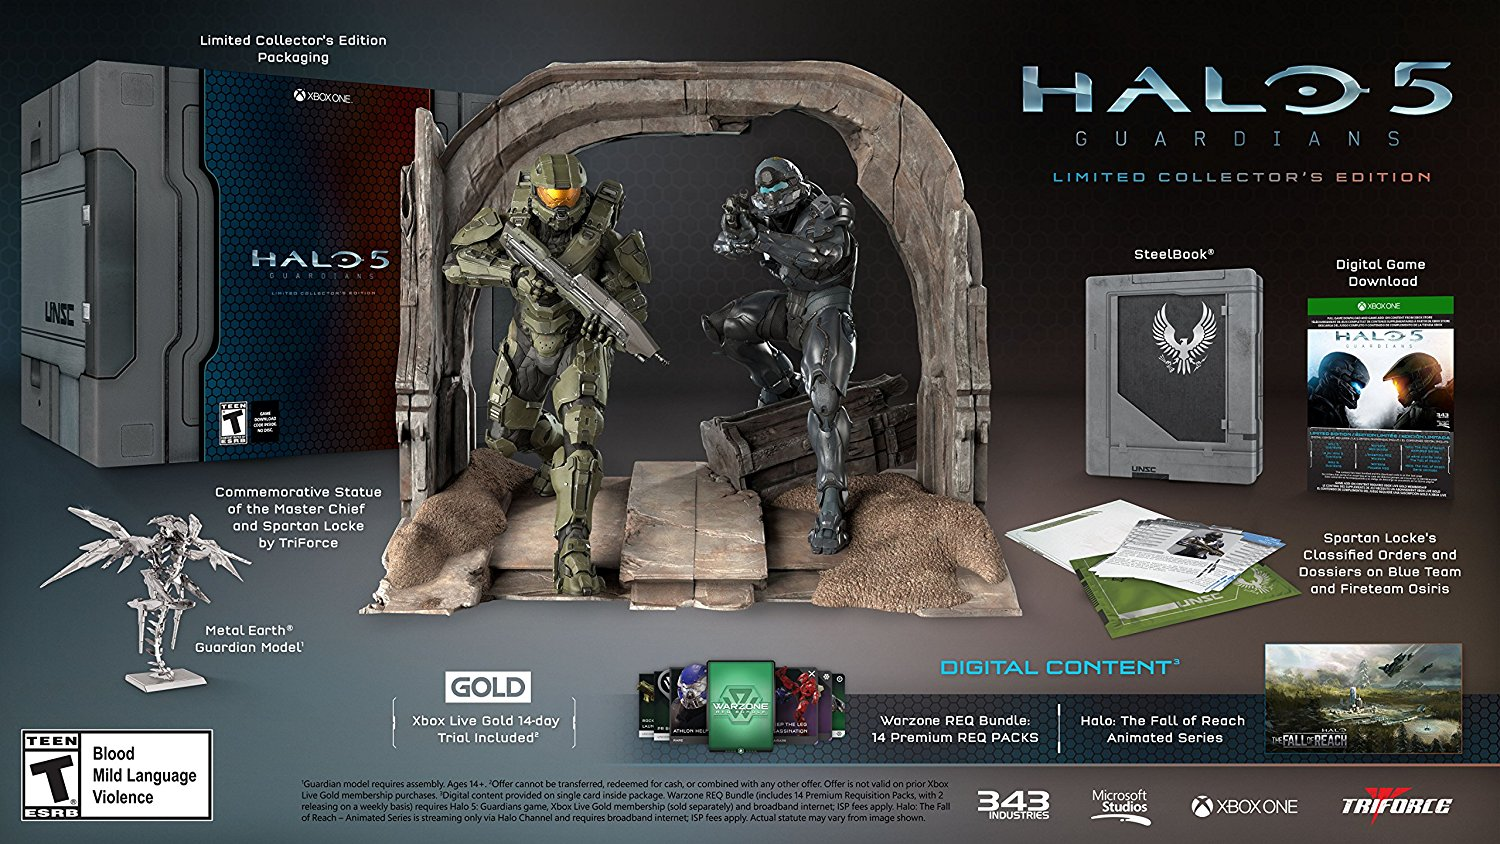 Halo 5: Guardians - Collector's Edition